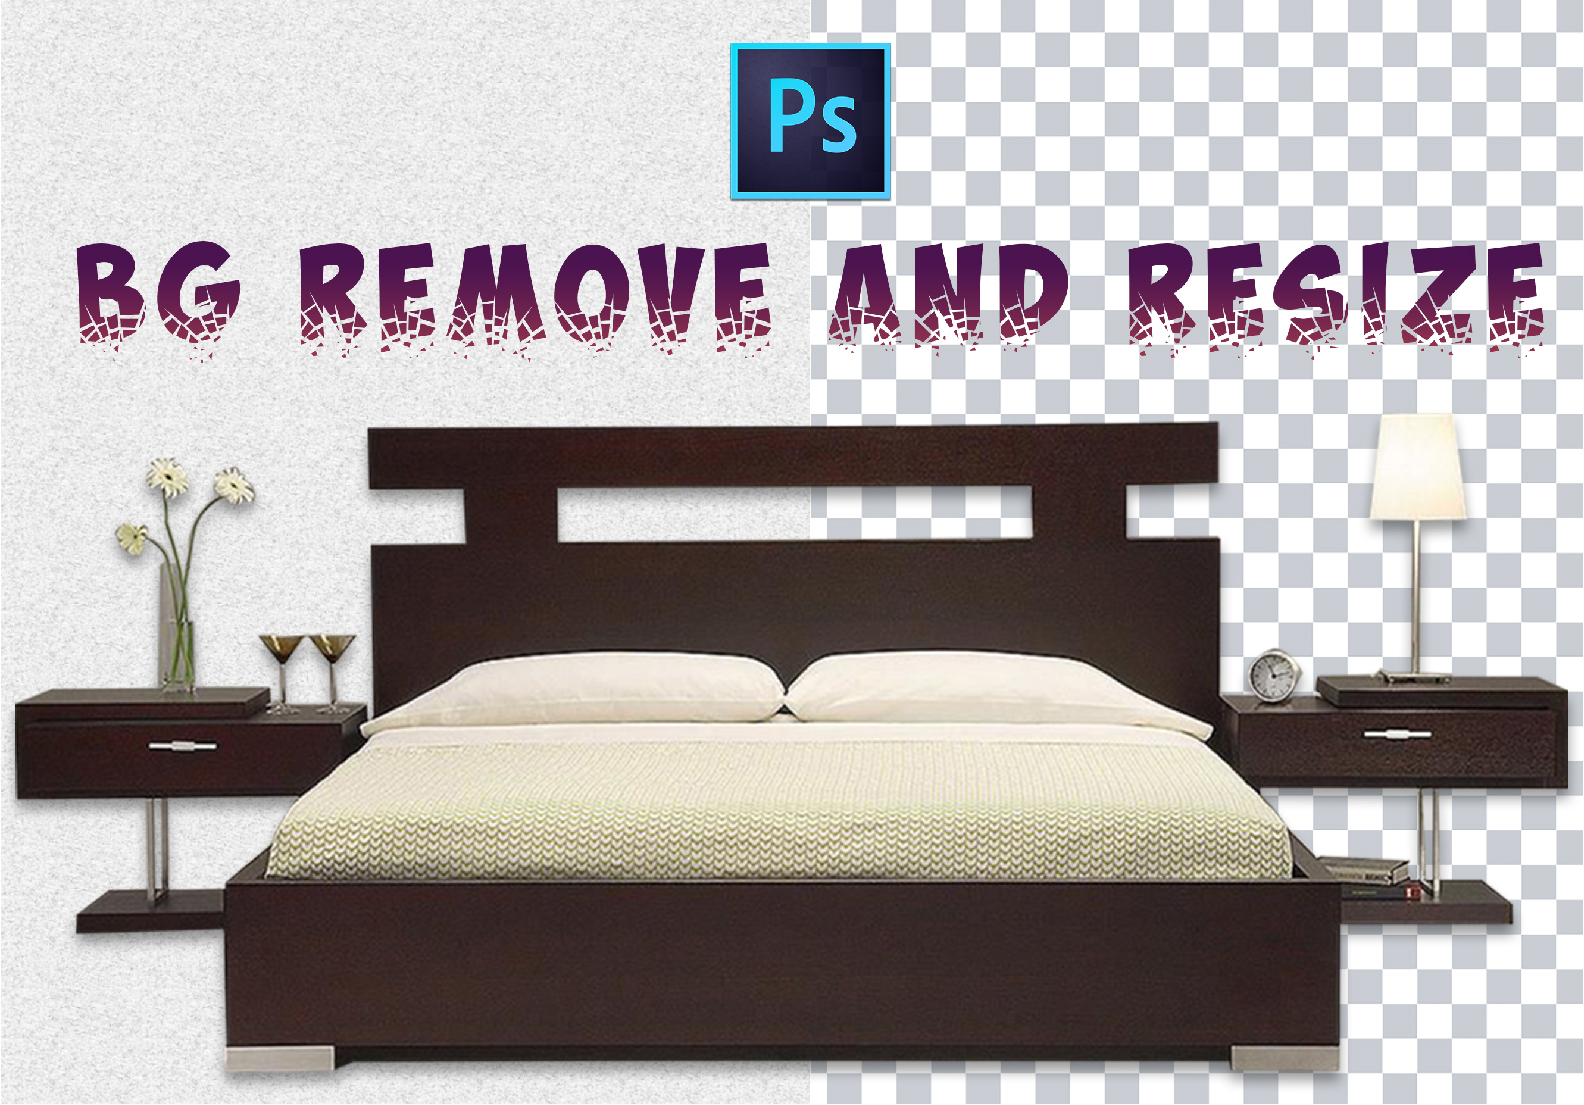 I will remove background or cut out 5 images